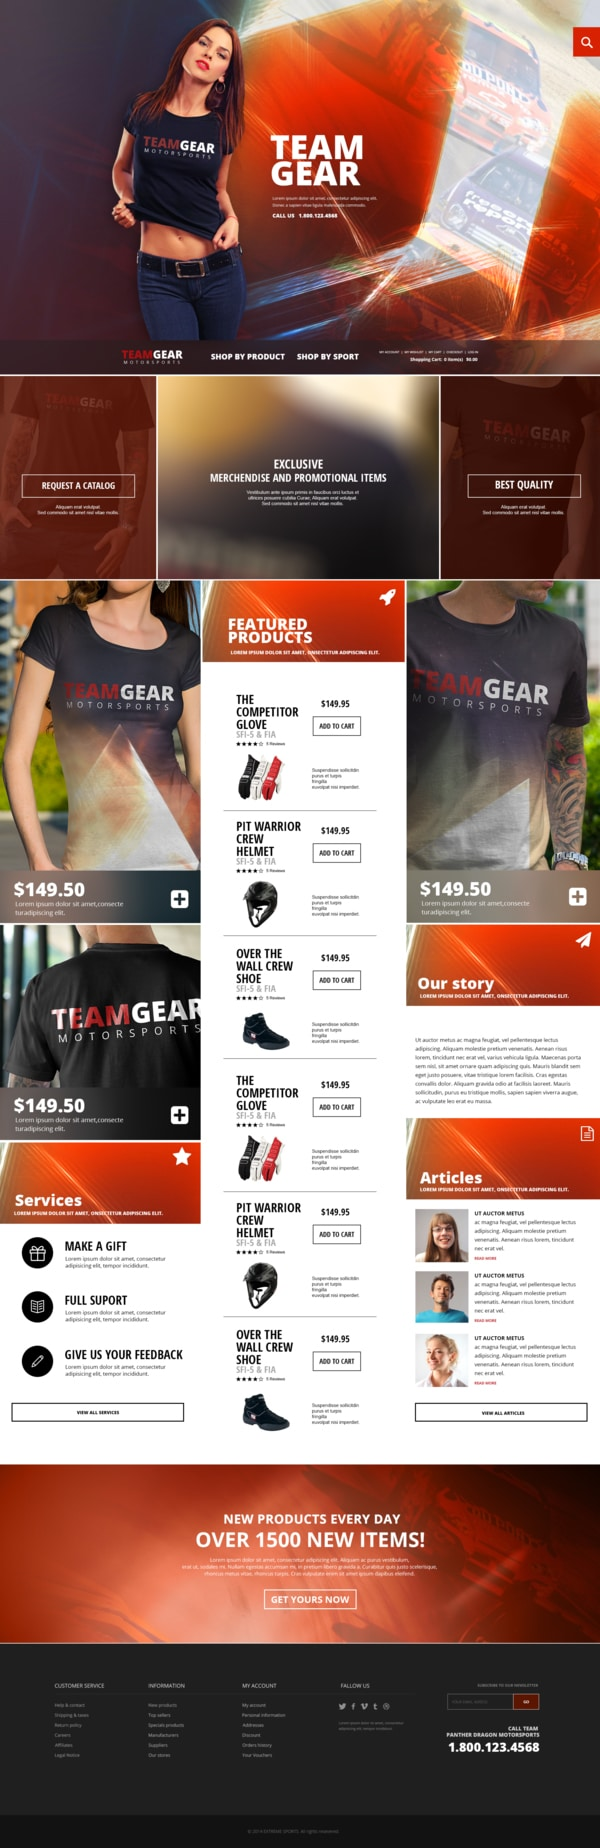 Team Gear - Online shop Template PSD